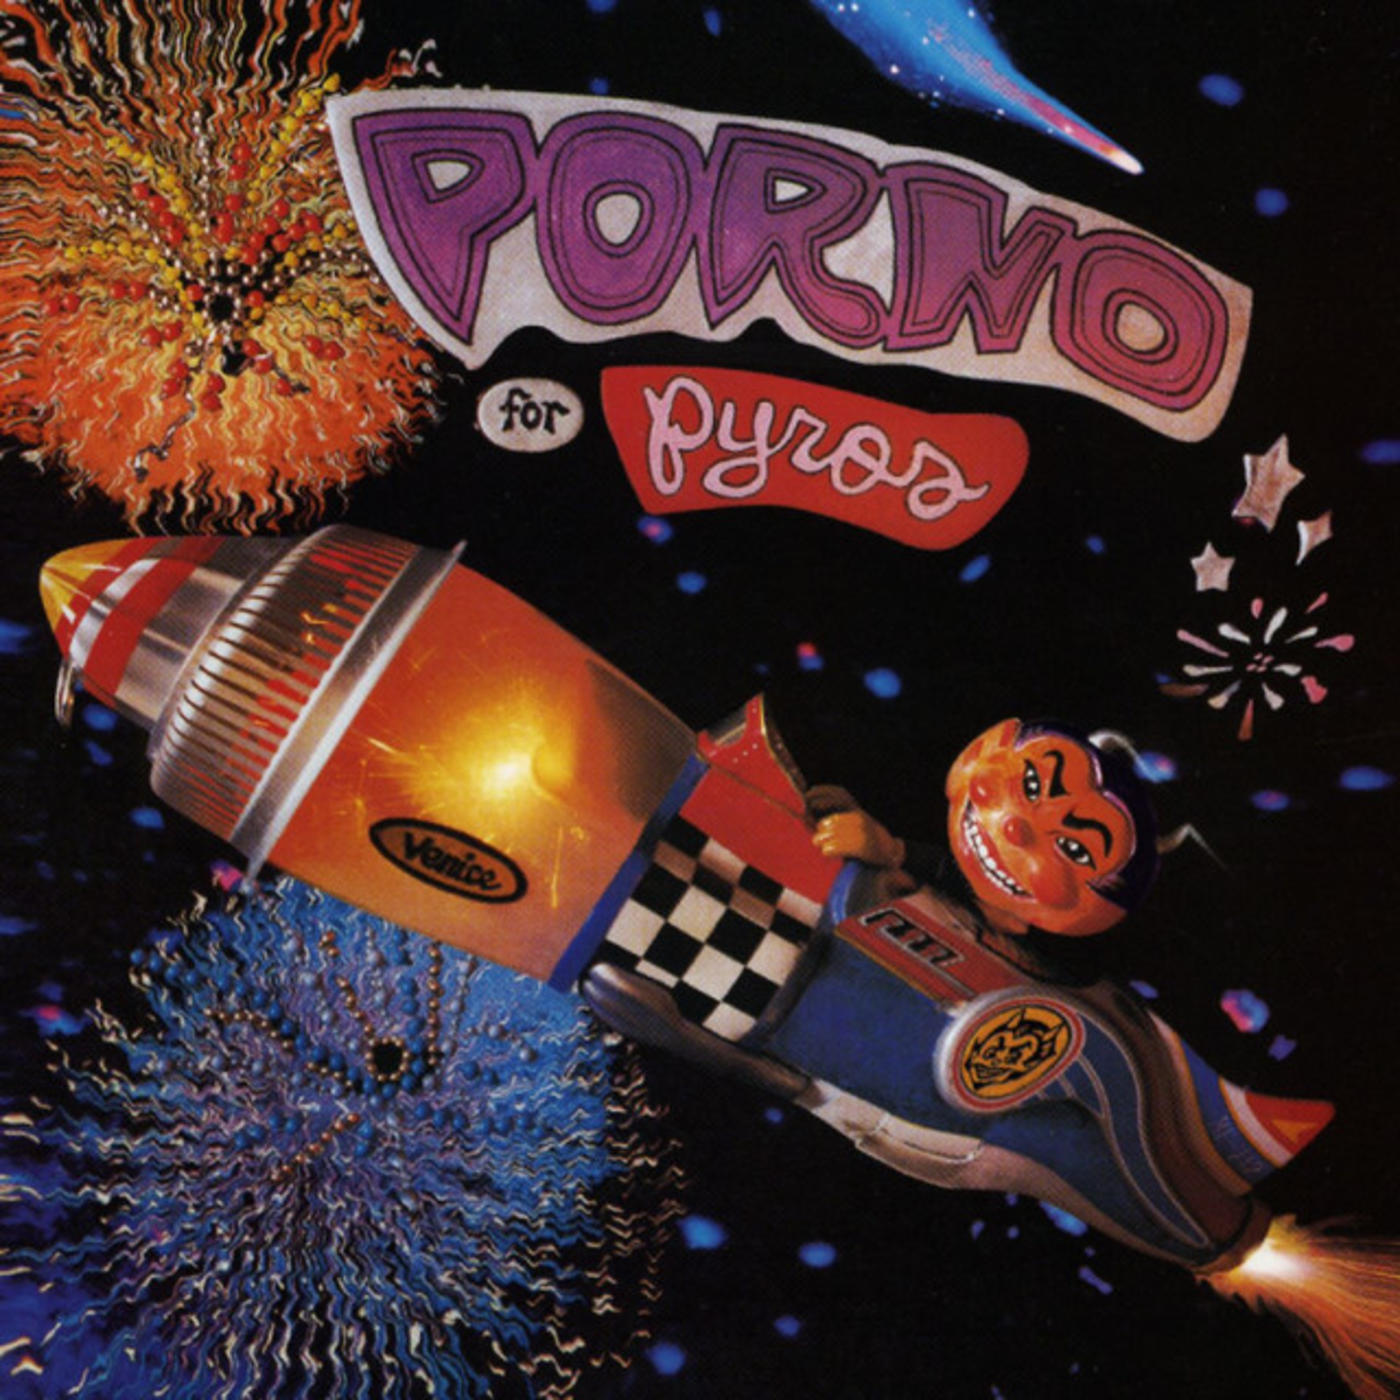 """Album Porno once upon a time in the top spot: porno for pyros, """"pets"""